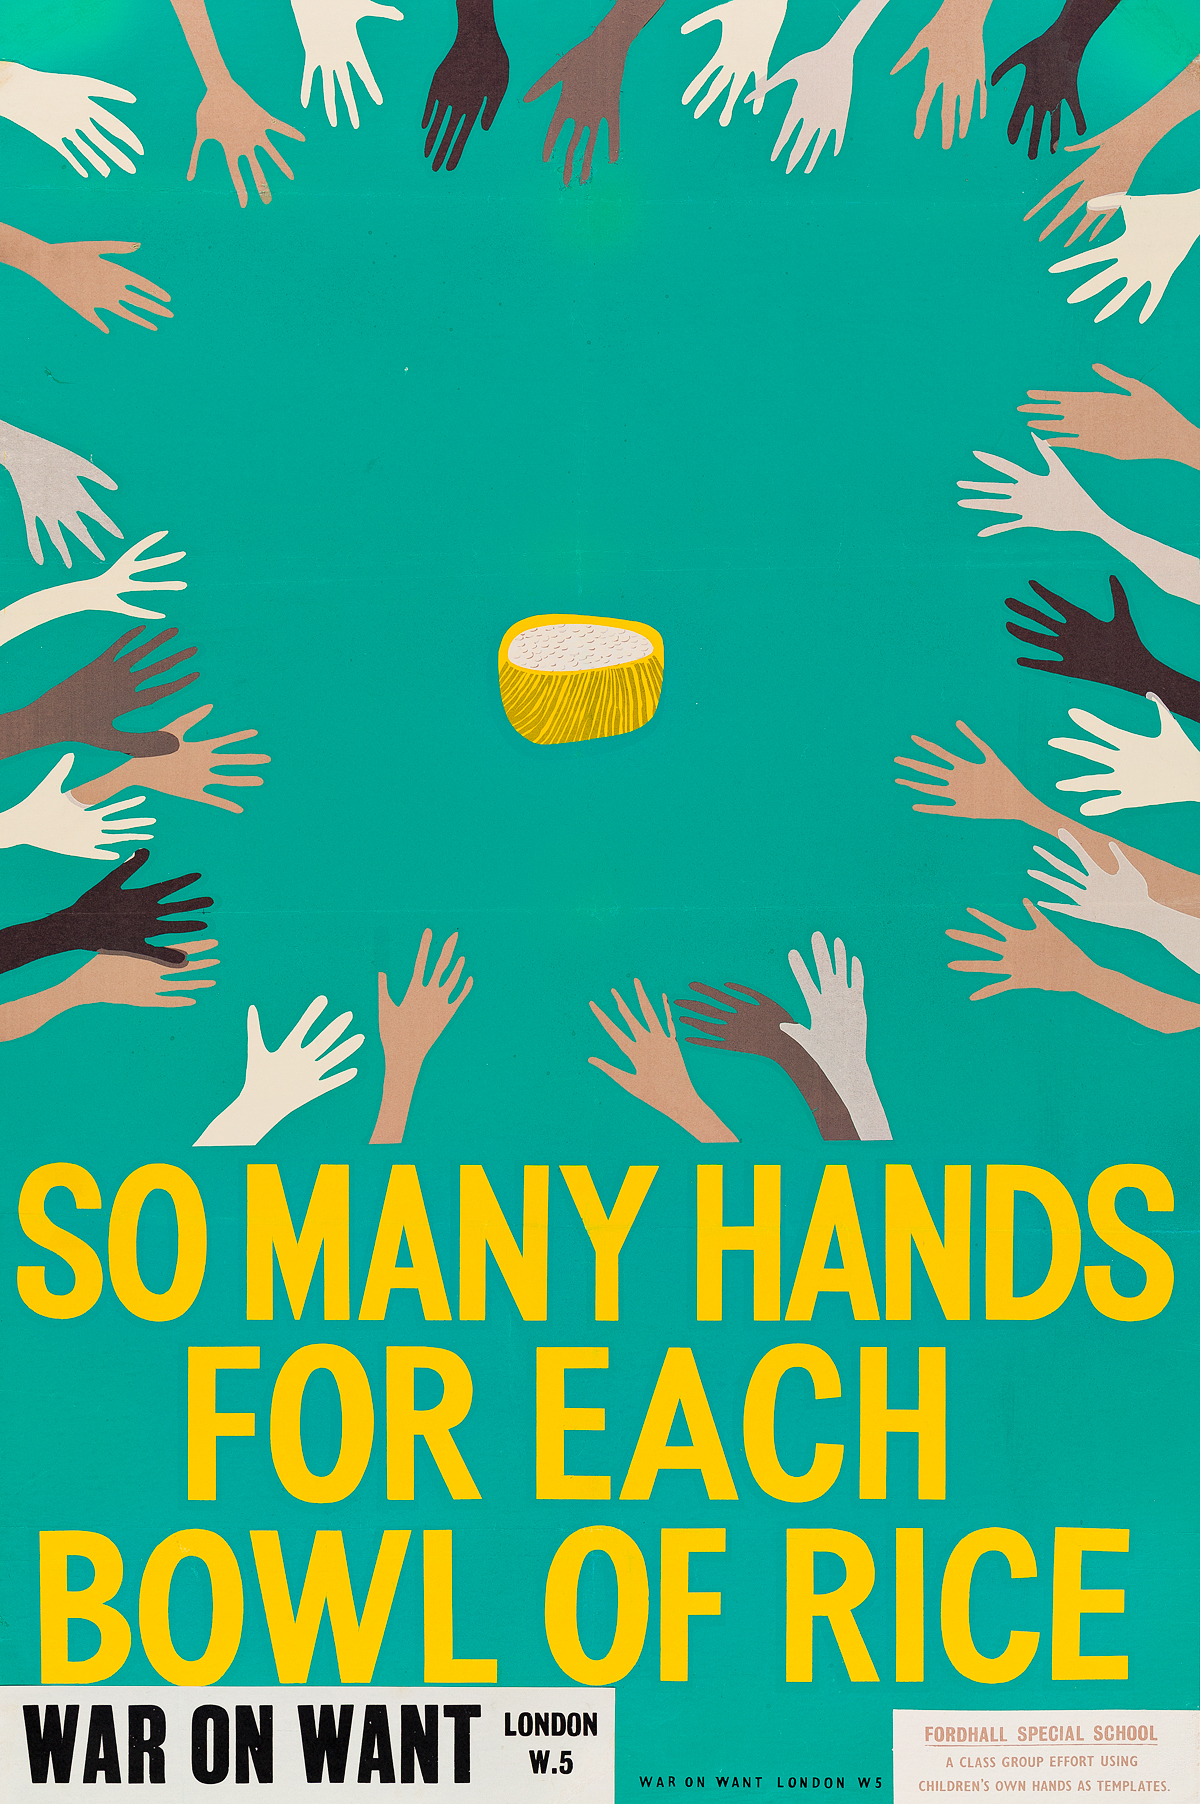 DESIGNER UNKNOWN. SO MANY HANDS FOR EACH BOWL OF RICE / WAR ON WANT. 29x19 inches, 75x49 cm.